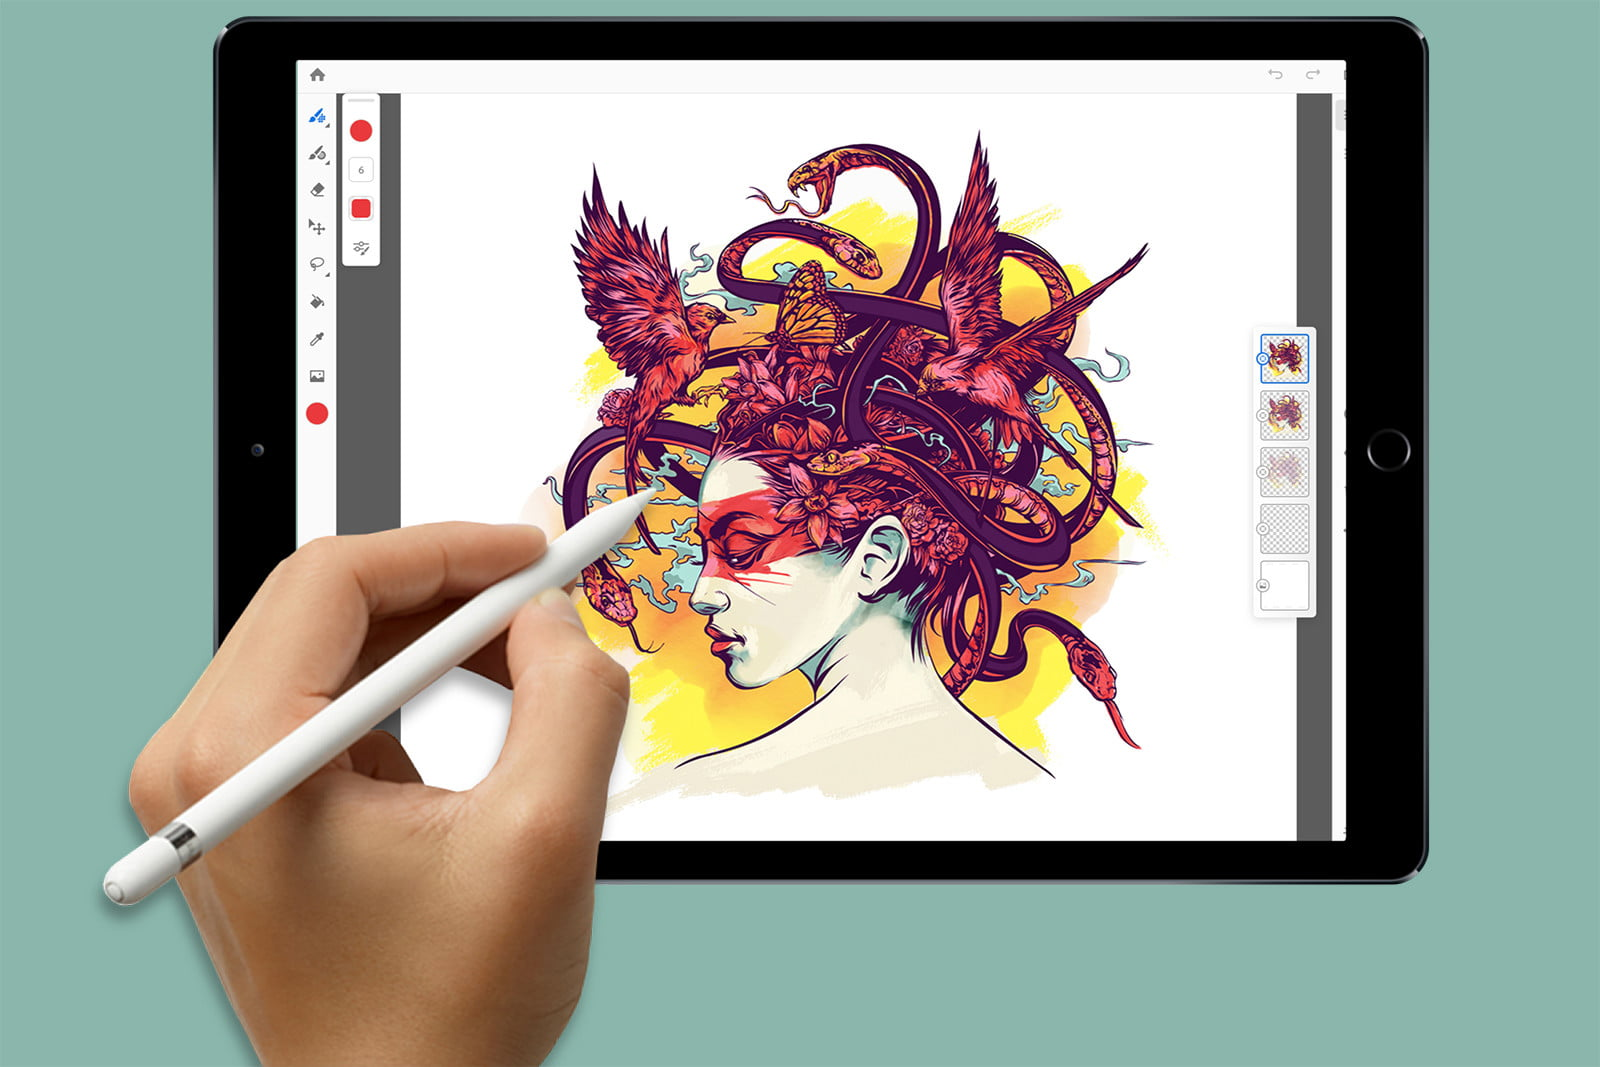 Premiere Rush, Photoshop for iPad: Biggest Unveils at Adobe Max 2018